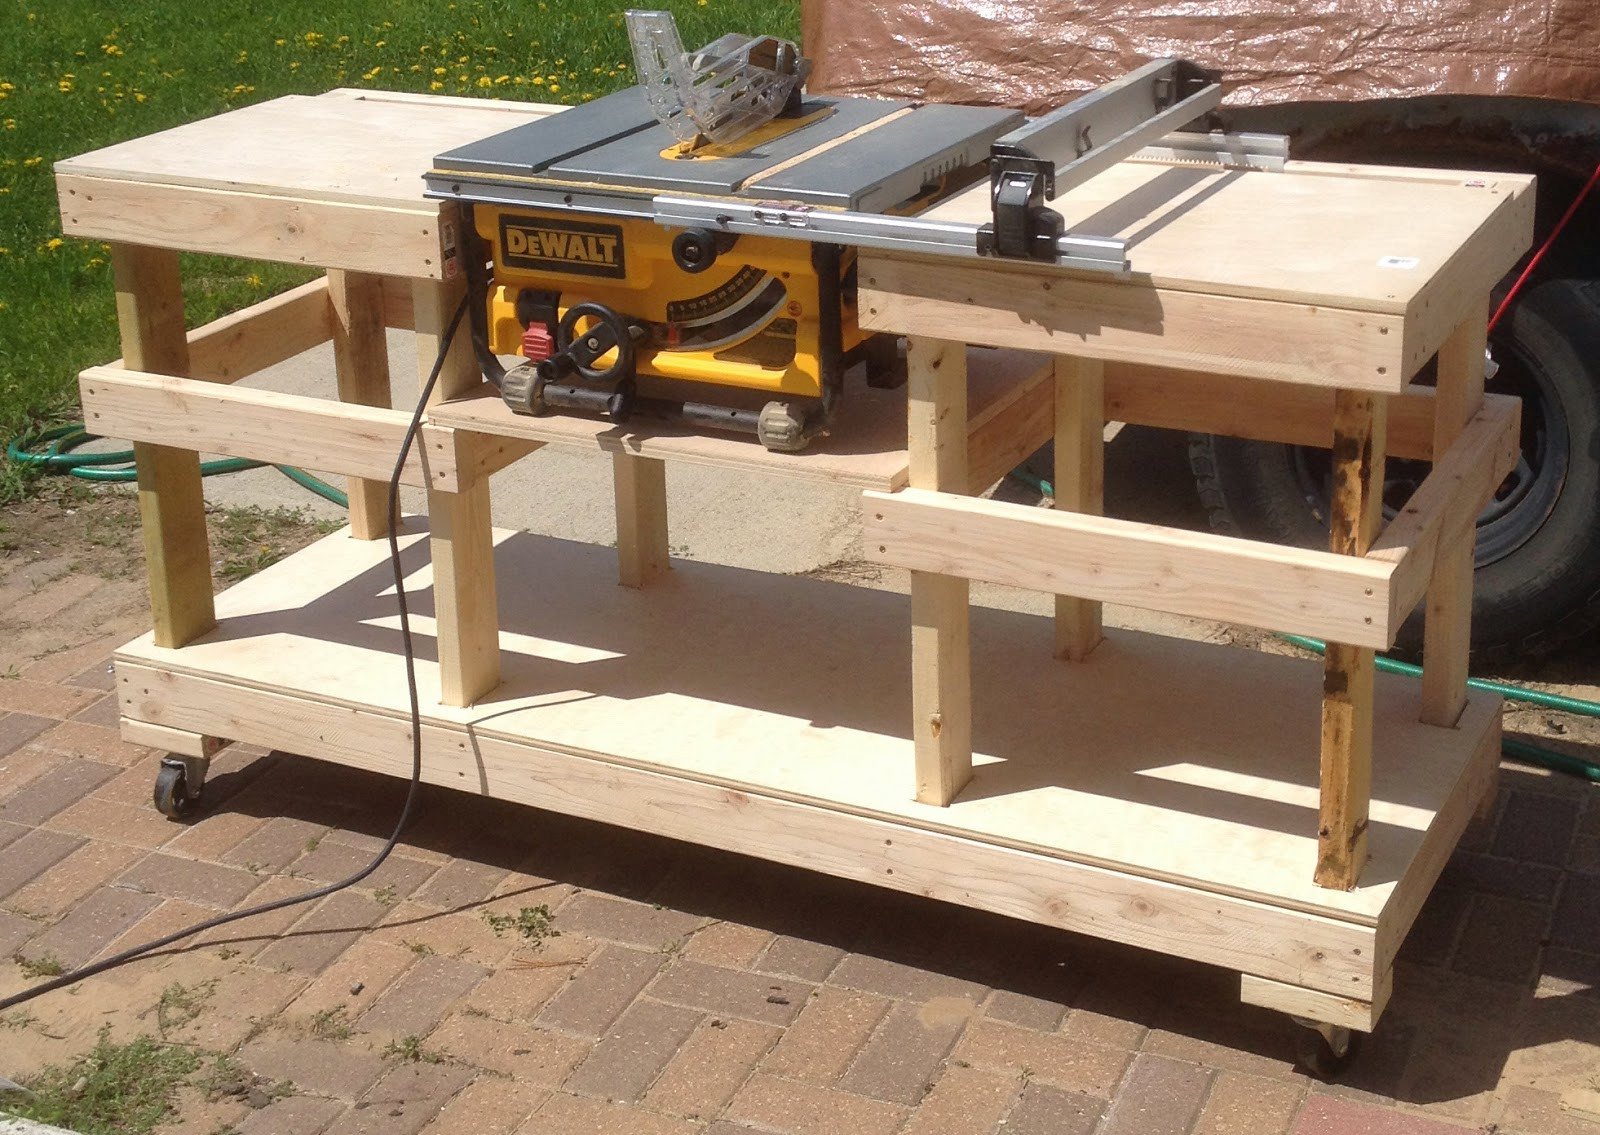 Best ideas about Best DIY Table Saw . Save or Pin DIY Table Saw Stand on Casters Now.